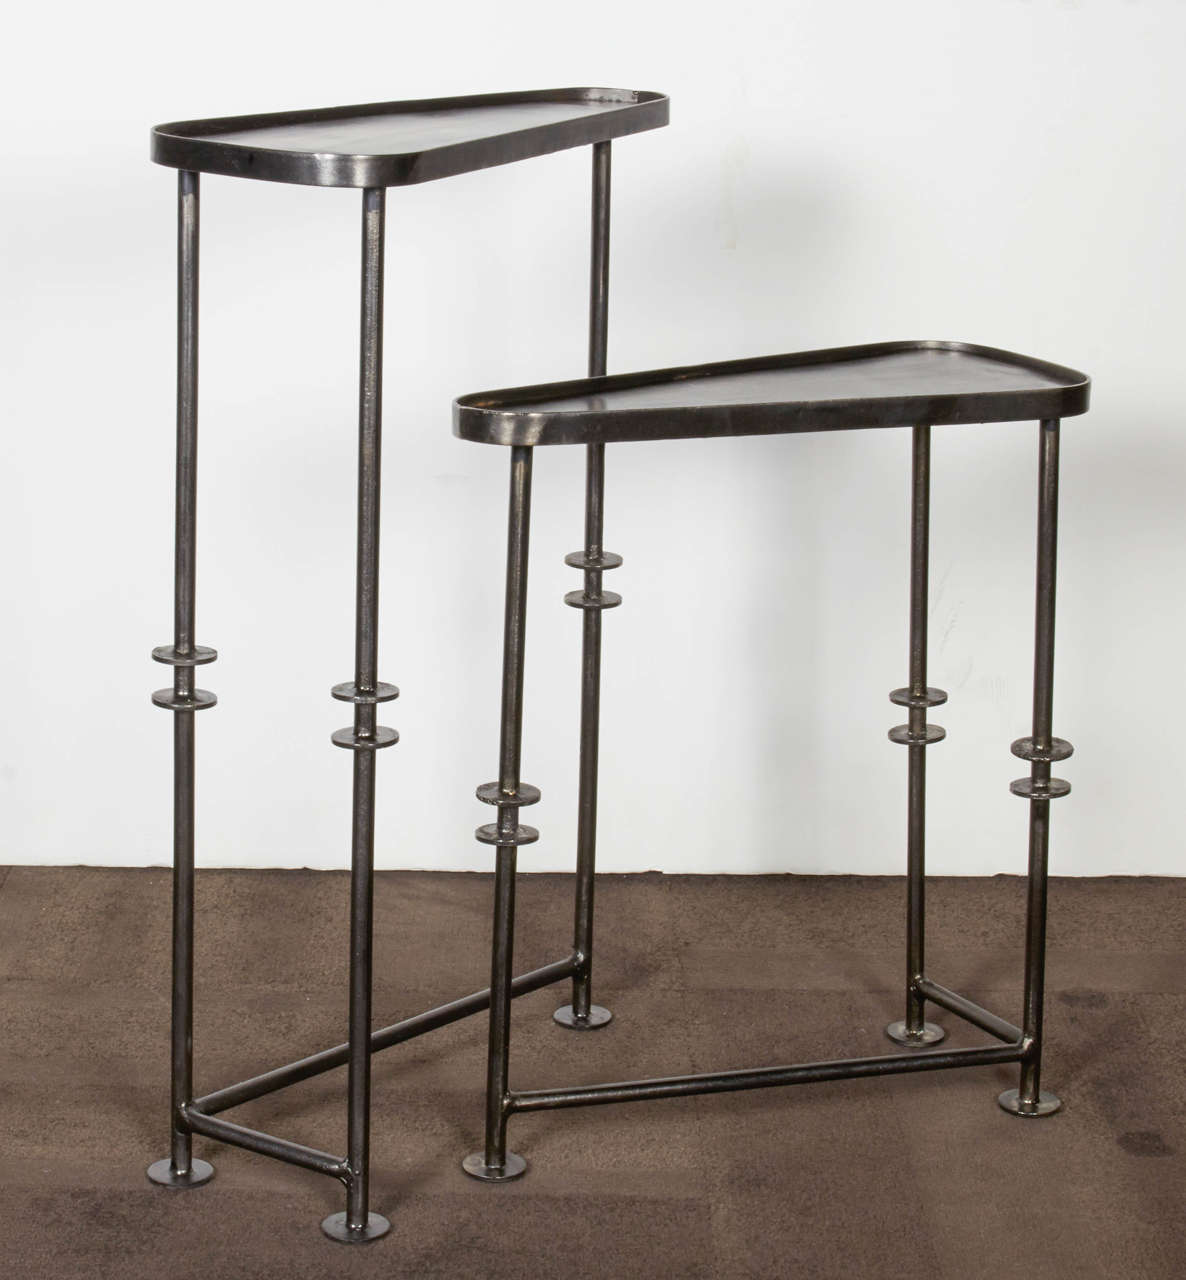 Industrial Nesting Tables And Side Tables In Burnished Metal Image 2. Full resolution‎  image, nominally Width 1186 Height 1280 pixels, image with #604E42.